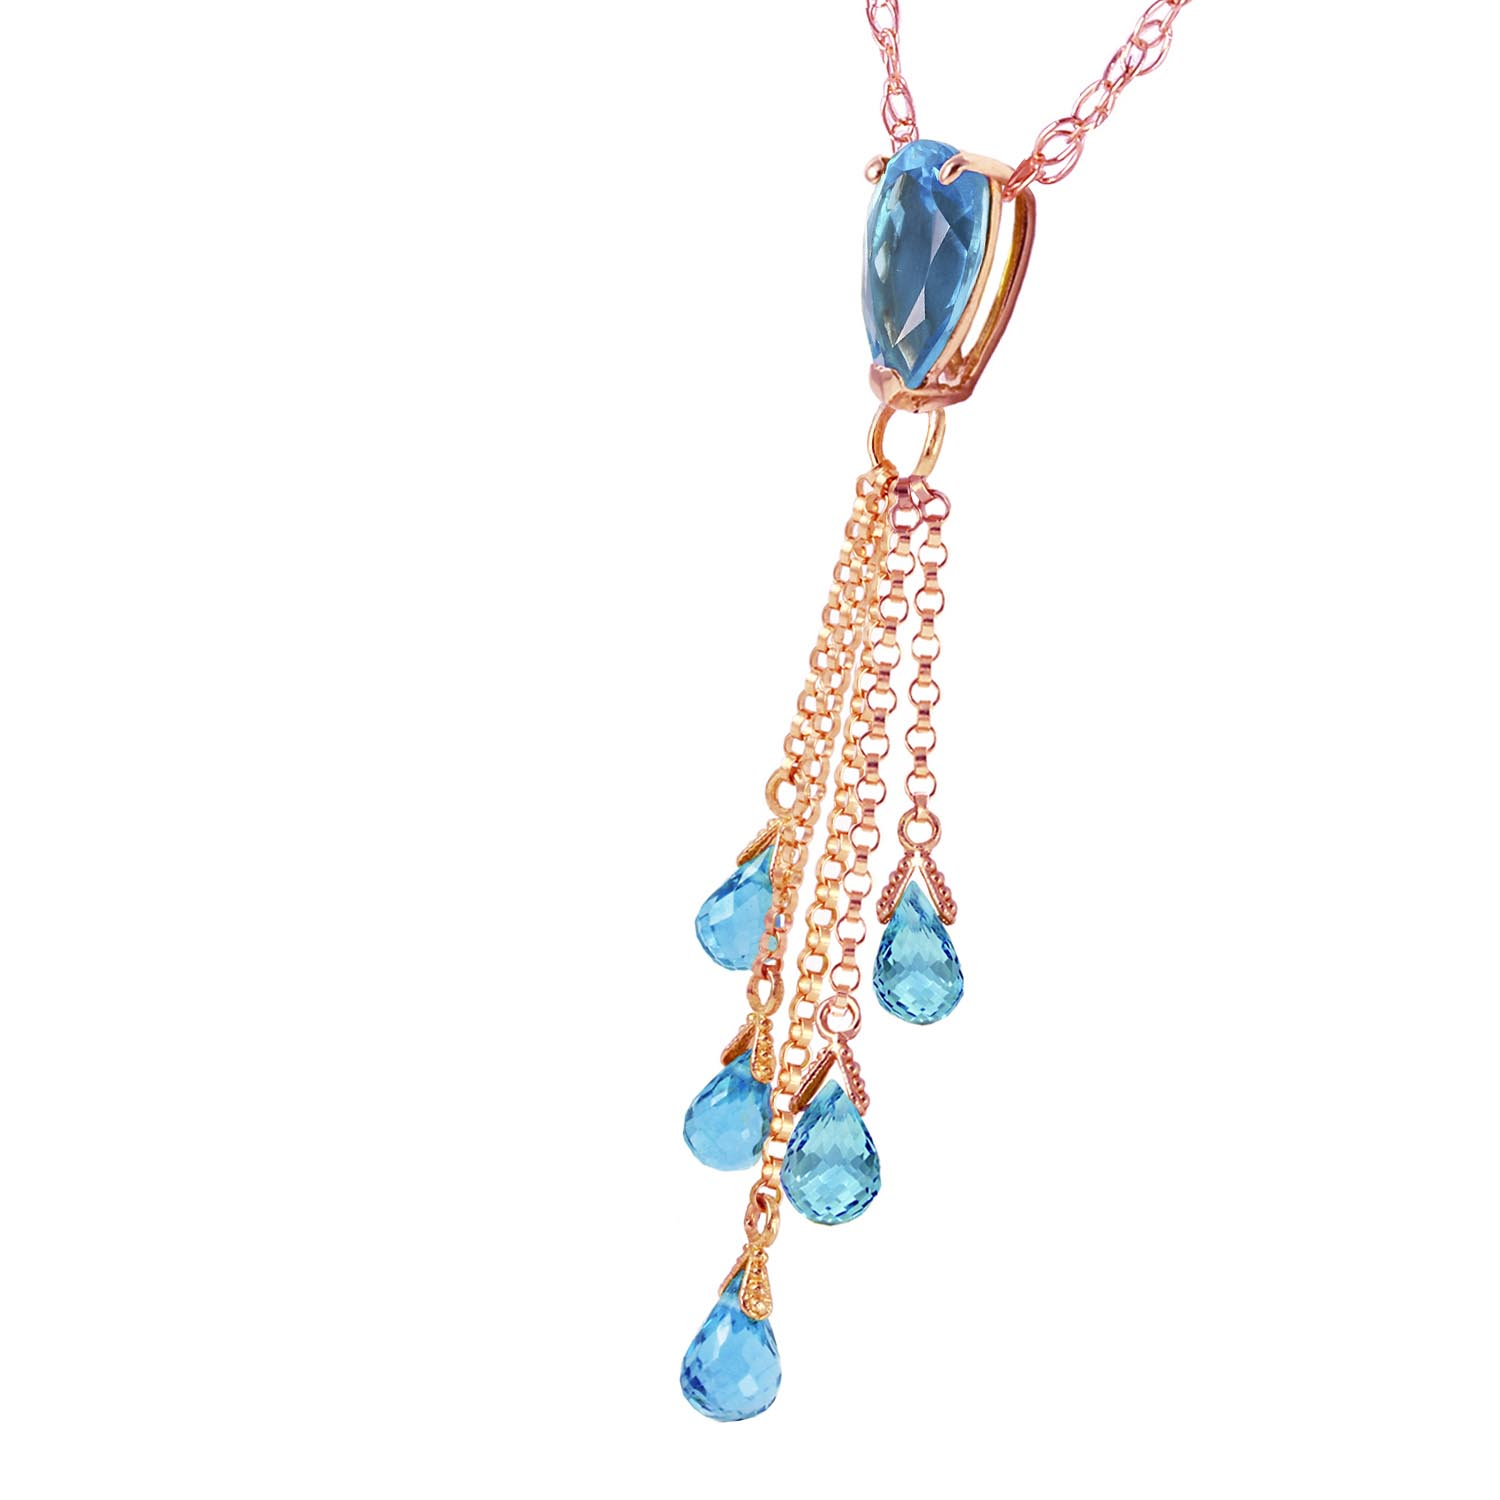 Blue Topaz Comet Tail Pendant Necklace 7.5ctw in 9ct Rose Gold